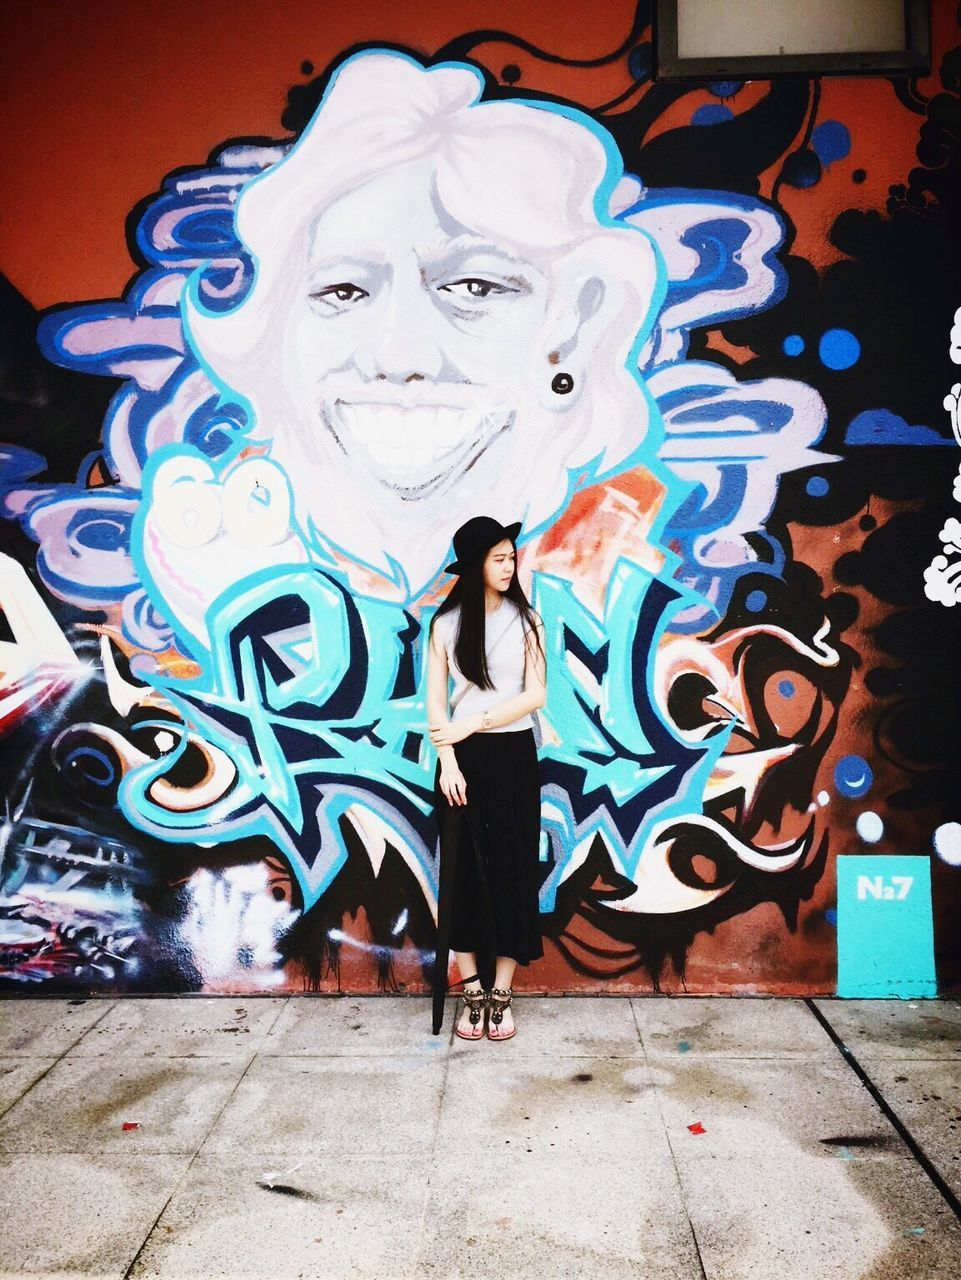 creativity, leisure activity, graffiti, art and craft, real people, lifestyles, standing, one person, full length, front view, architecture, built structure, casual clothing, multi colored, portrait, outdoors, artist, young adult, looking at camera, low angle view, young women, day, people